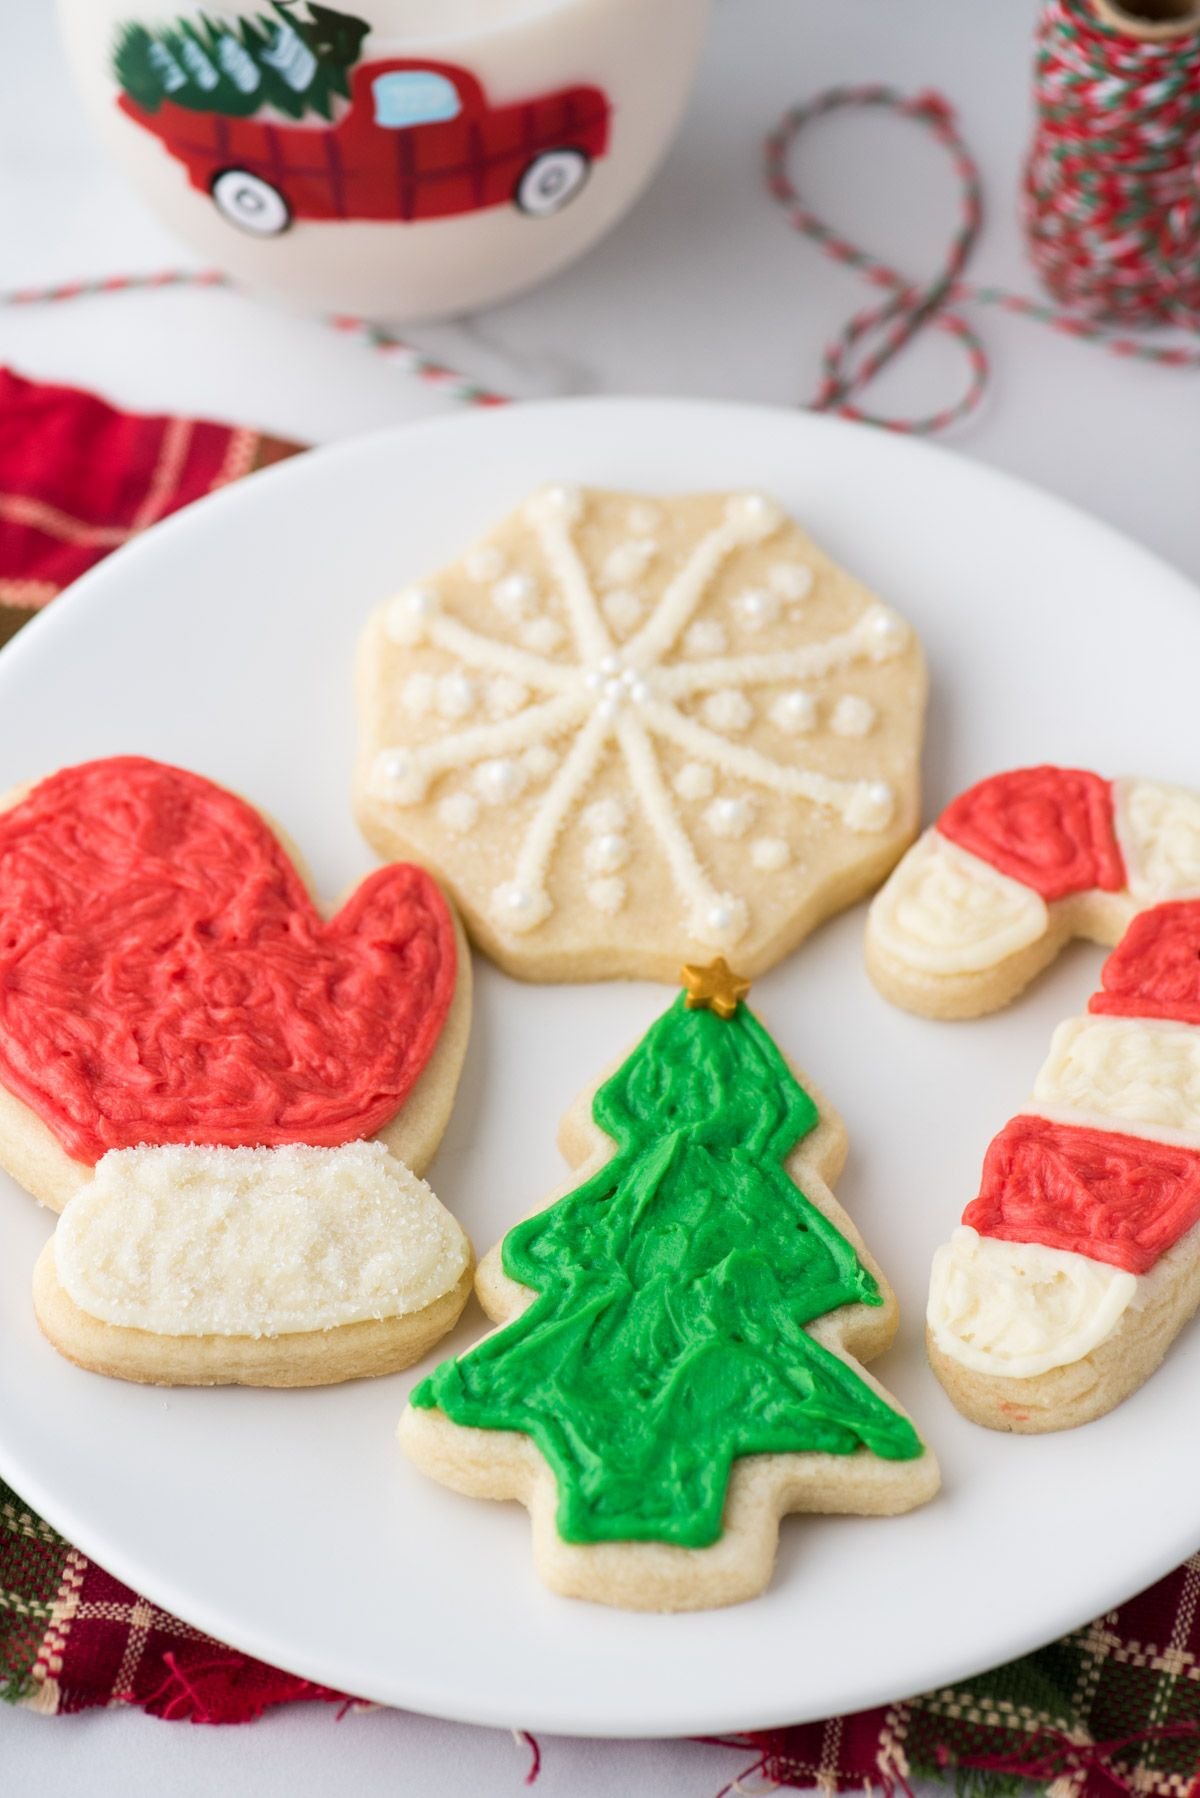 Cut out sugar cookies are perfect for the holidays! This recipe has ALL the options - a no chill option, a gluten free option, plus buttercream and royal icing recipes! The recipe is easy to follow with step by step pictures and a video tutorial! #cutoutsugarcookies #cutoutcookies #christmassugarcookies #easyroyalicingrecipe